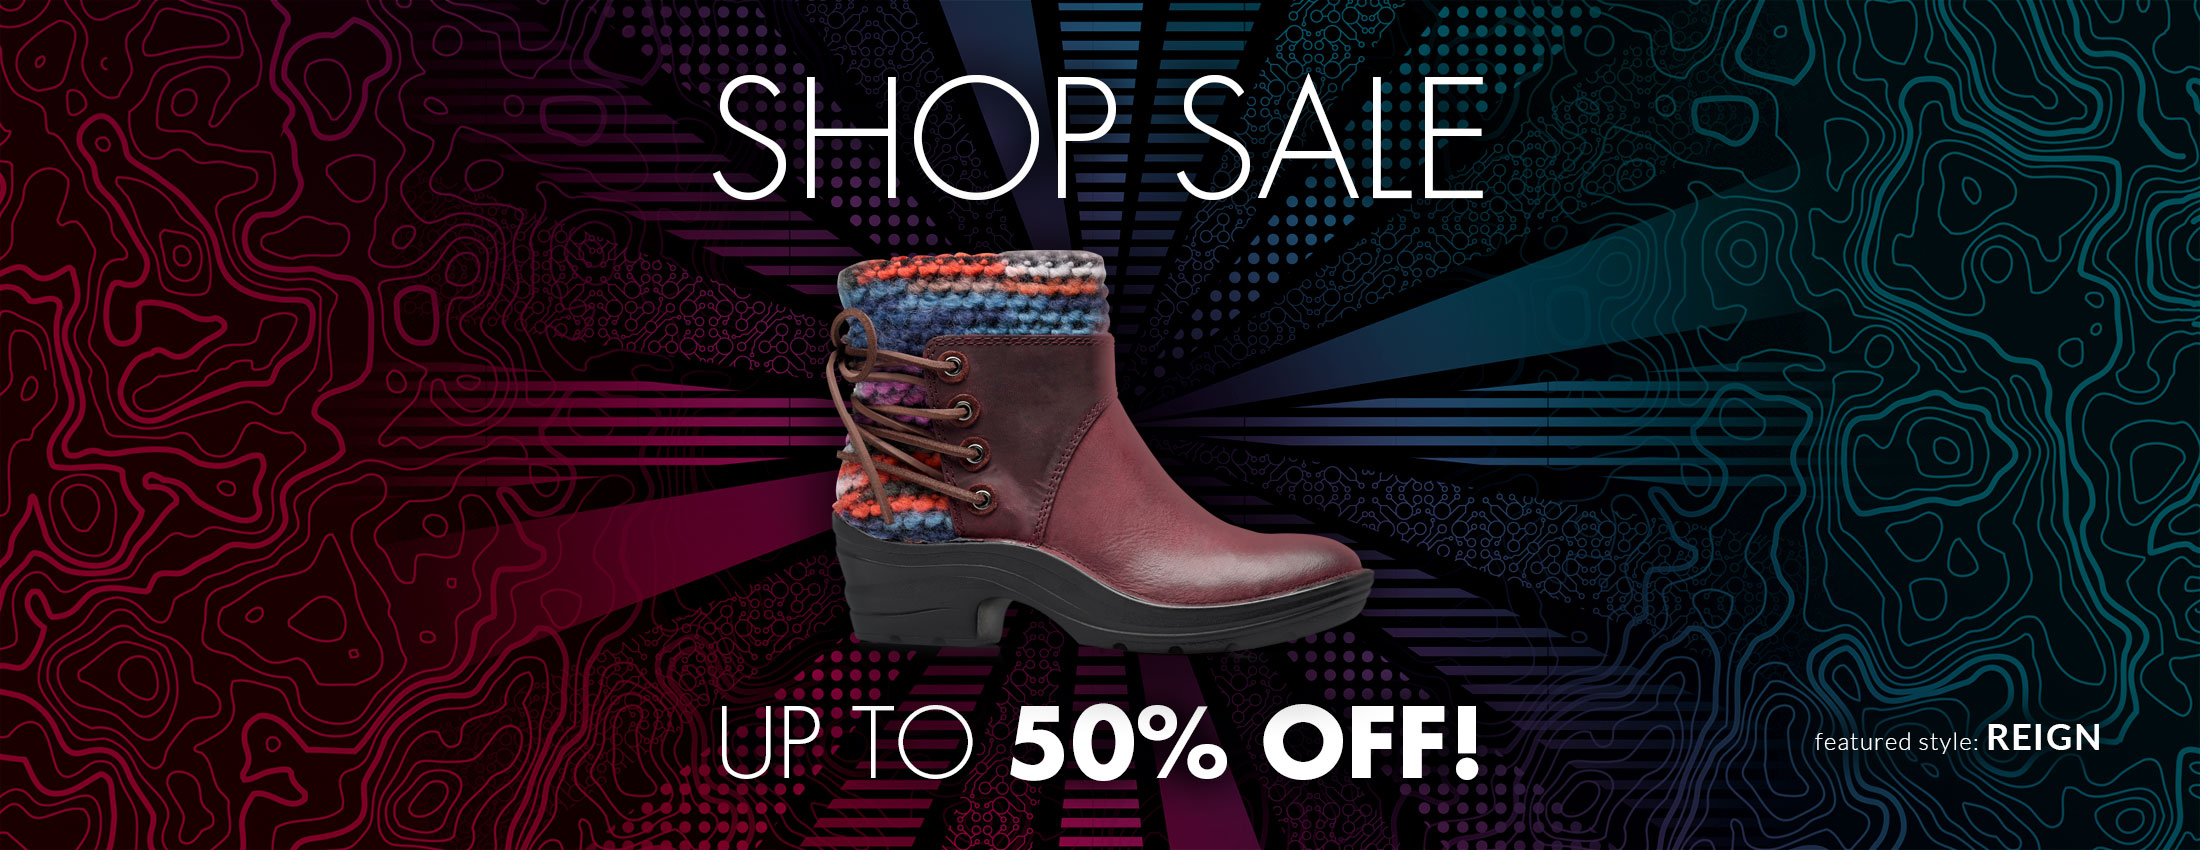 Shop Sale, Up to 50% off! Featured Style: Reign boot, shown in egglant purple